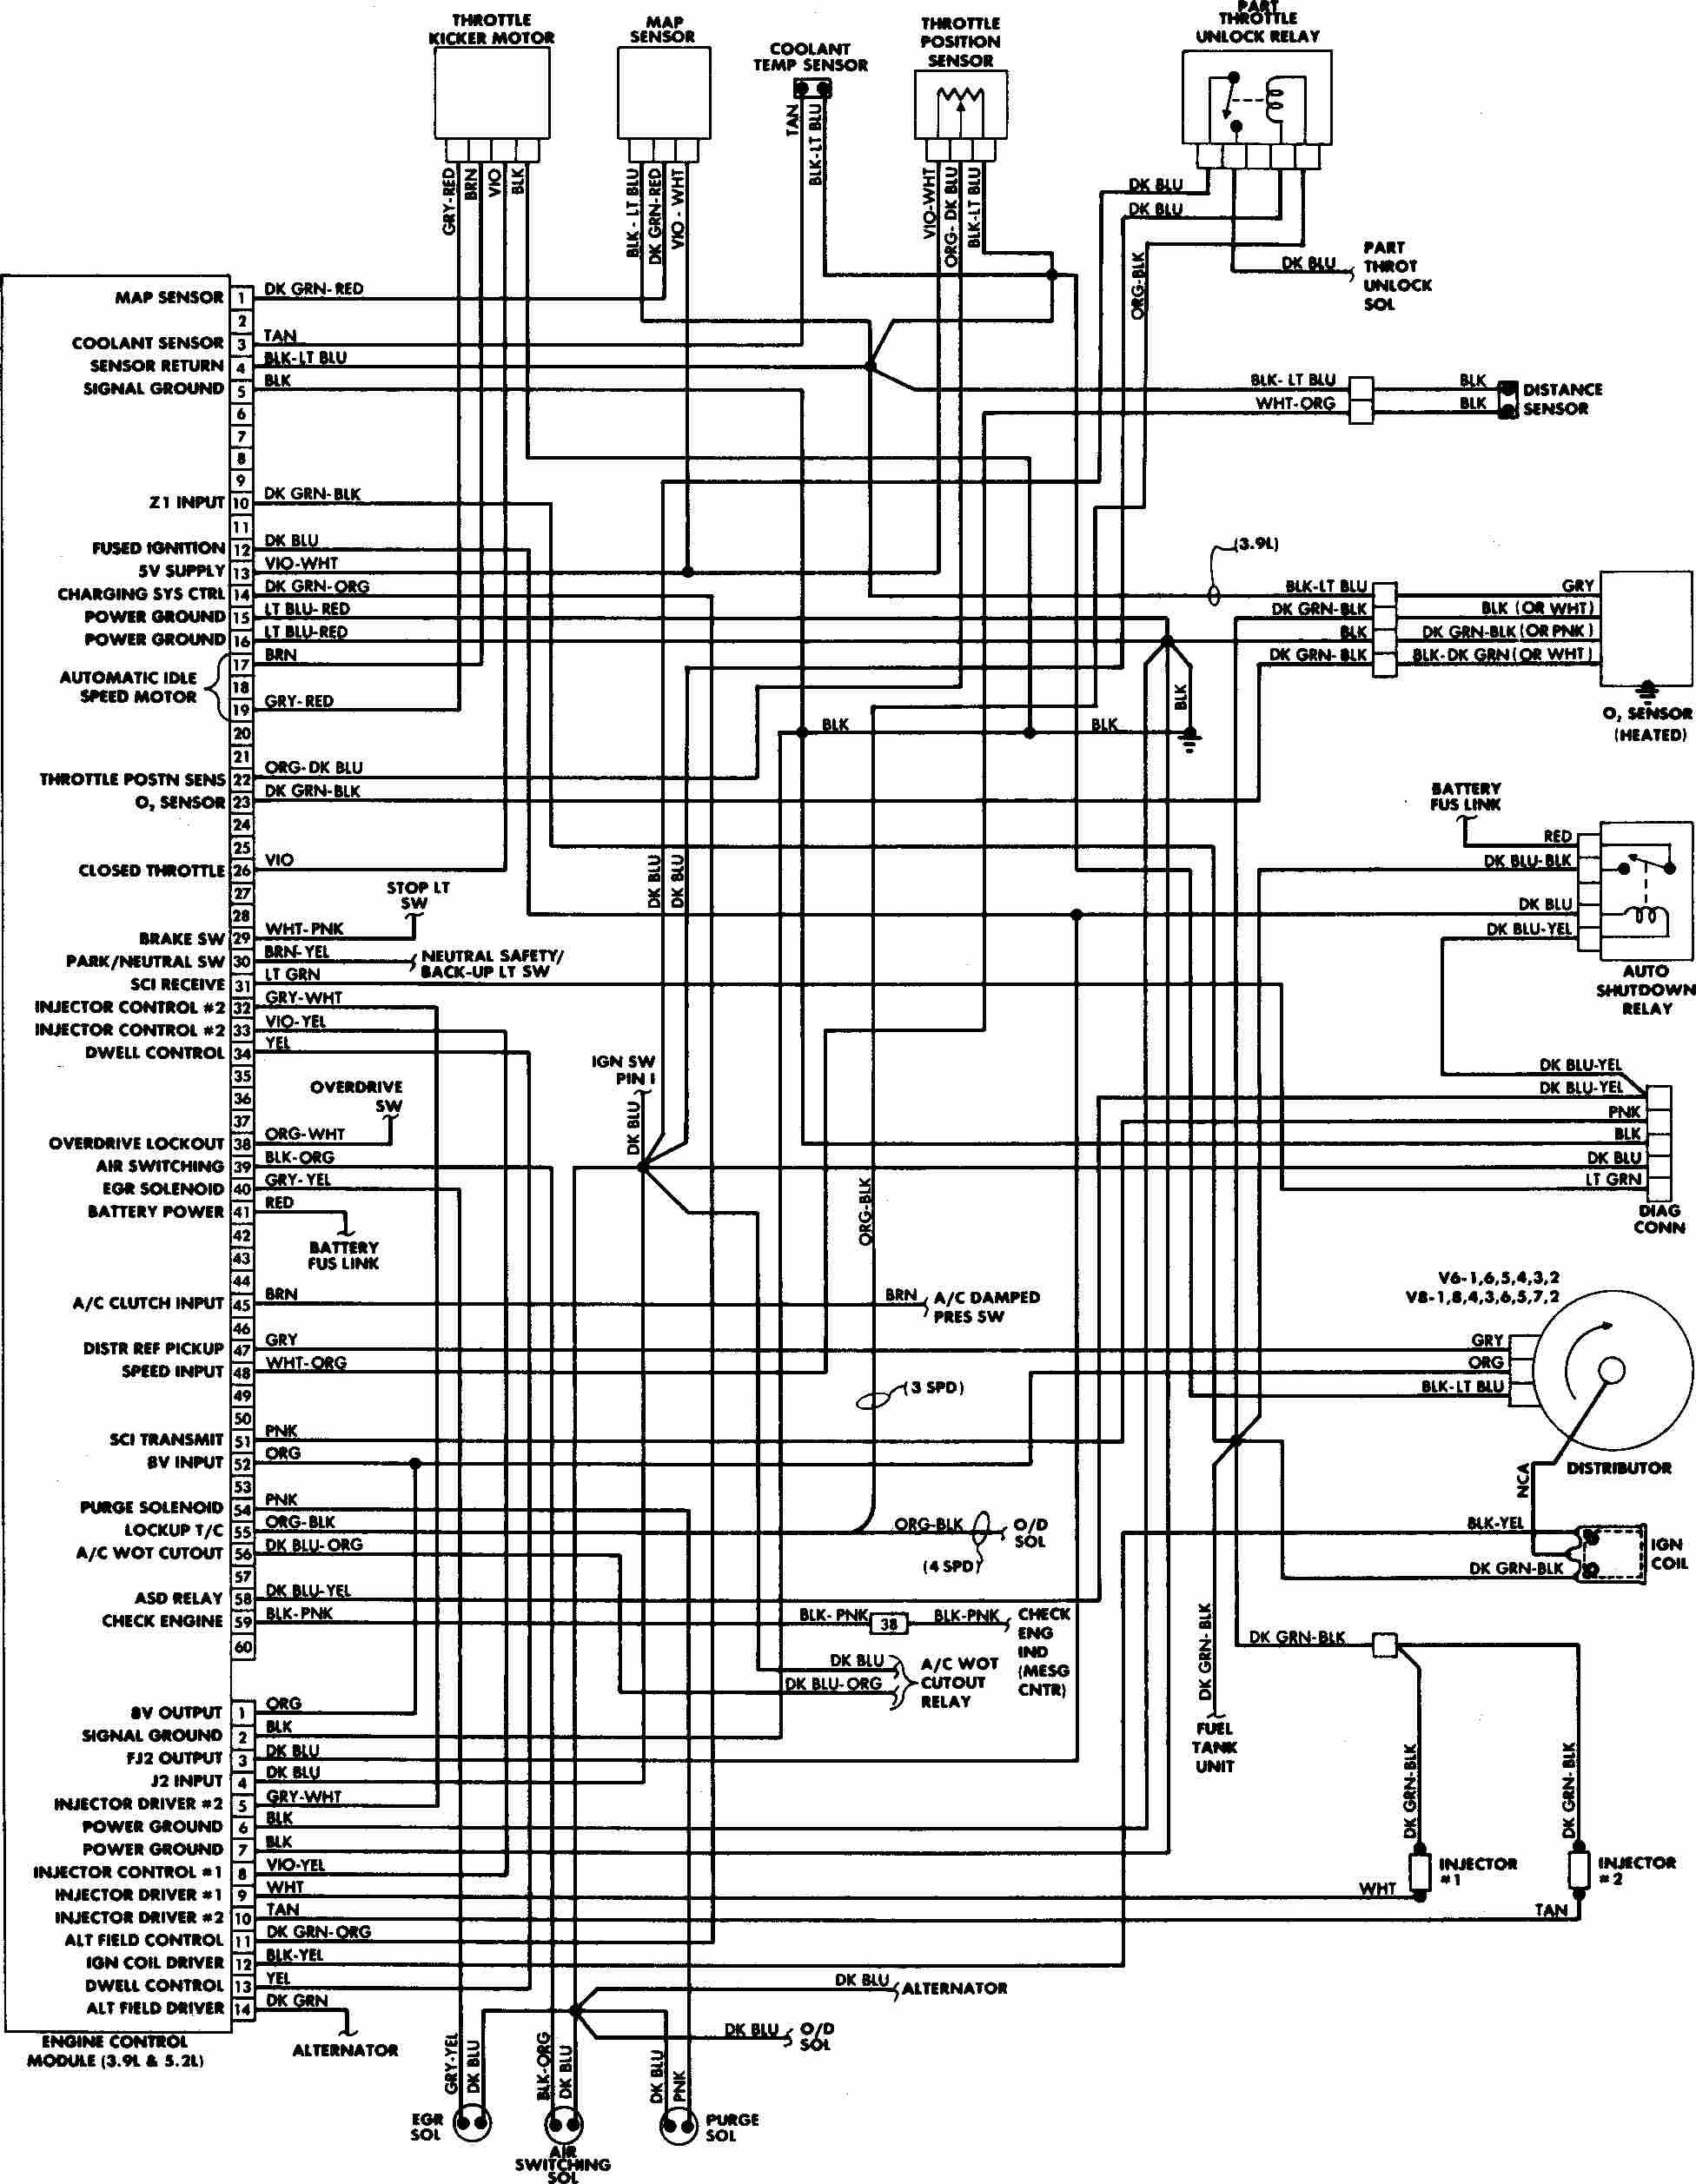 DIAGRAM] 2001 Durango Radio Wiring Diagram FULL Version HD Quality Wiring  Diagram - REWIRINGUK1A.BATRANSACTION.FRrewiringuk1a.batransaction.fr